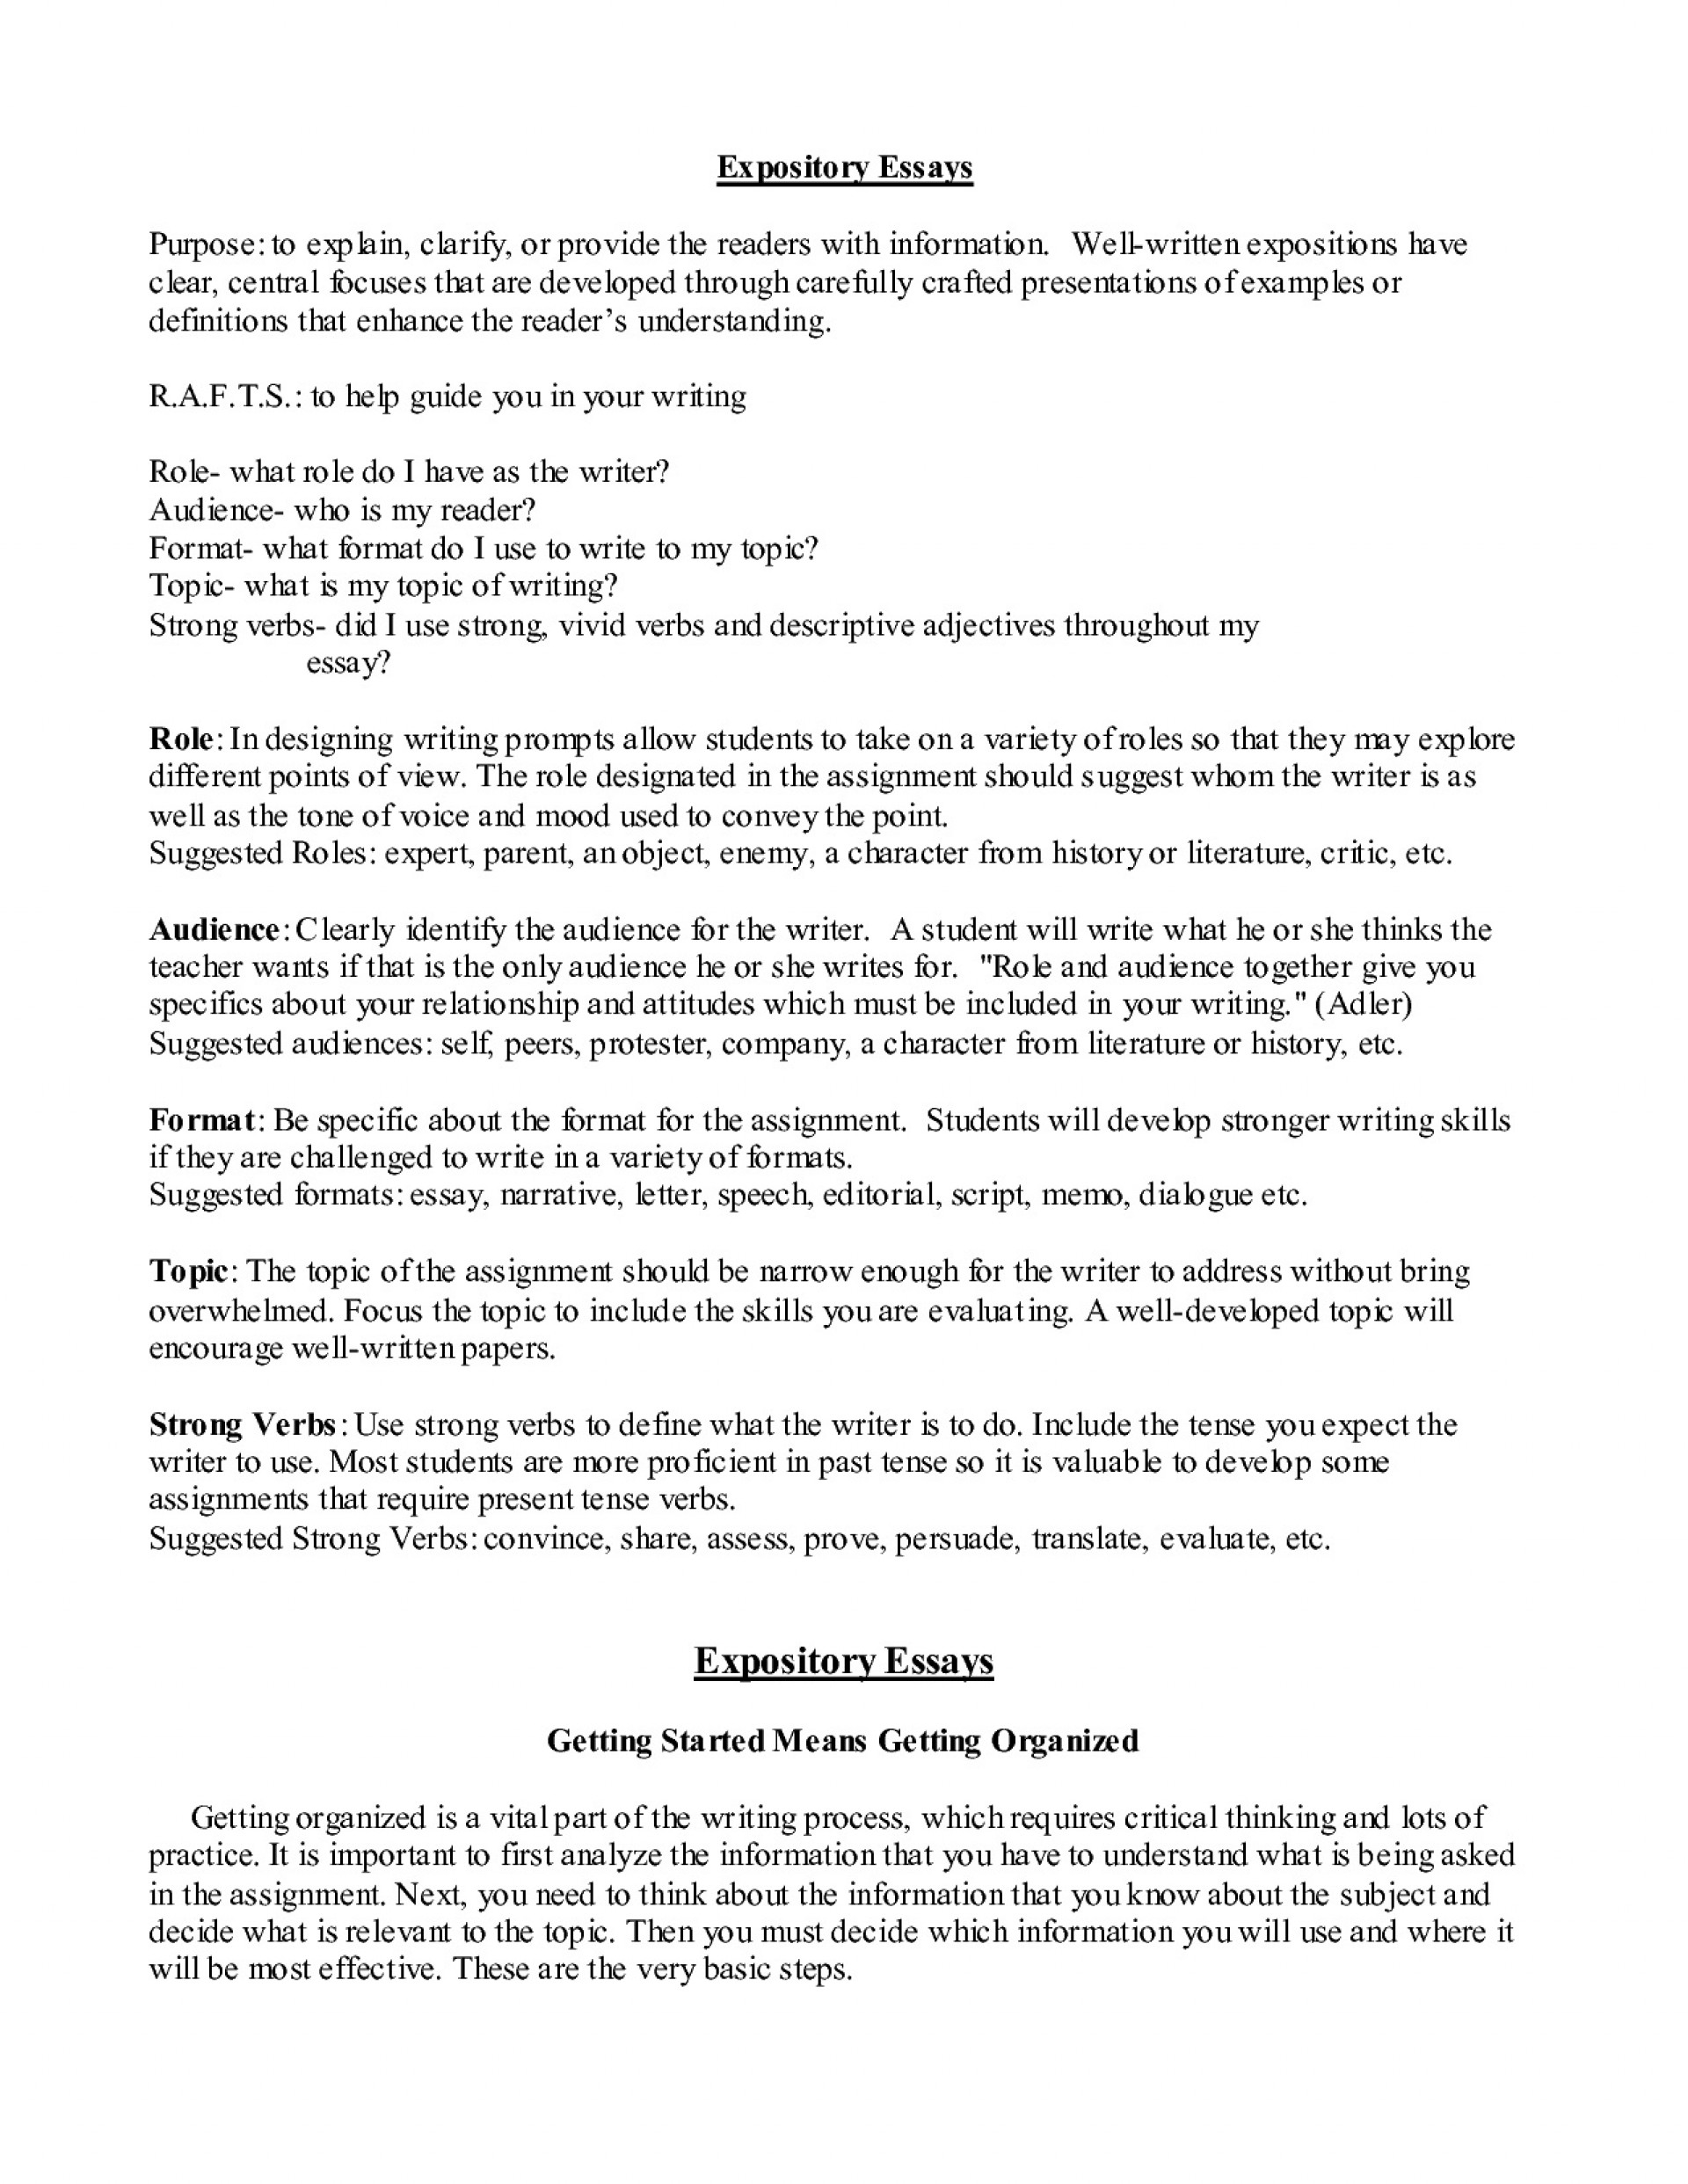 018 Editorial Essay Example Expository Topics Writings And Essays Subjects To Write An About Onwe Bioinnovate Co Perta Ideas Interesting Informative On Yourself Paper Imposing Examples For High School Short Sample Travel 1920